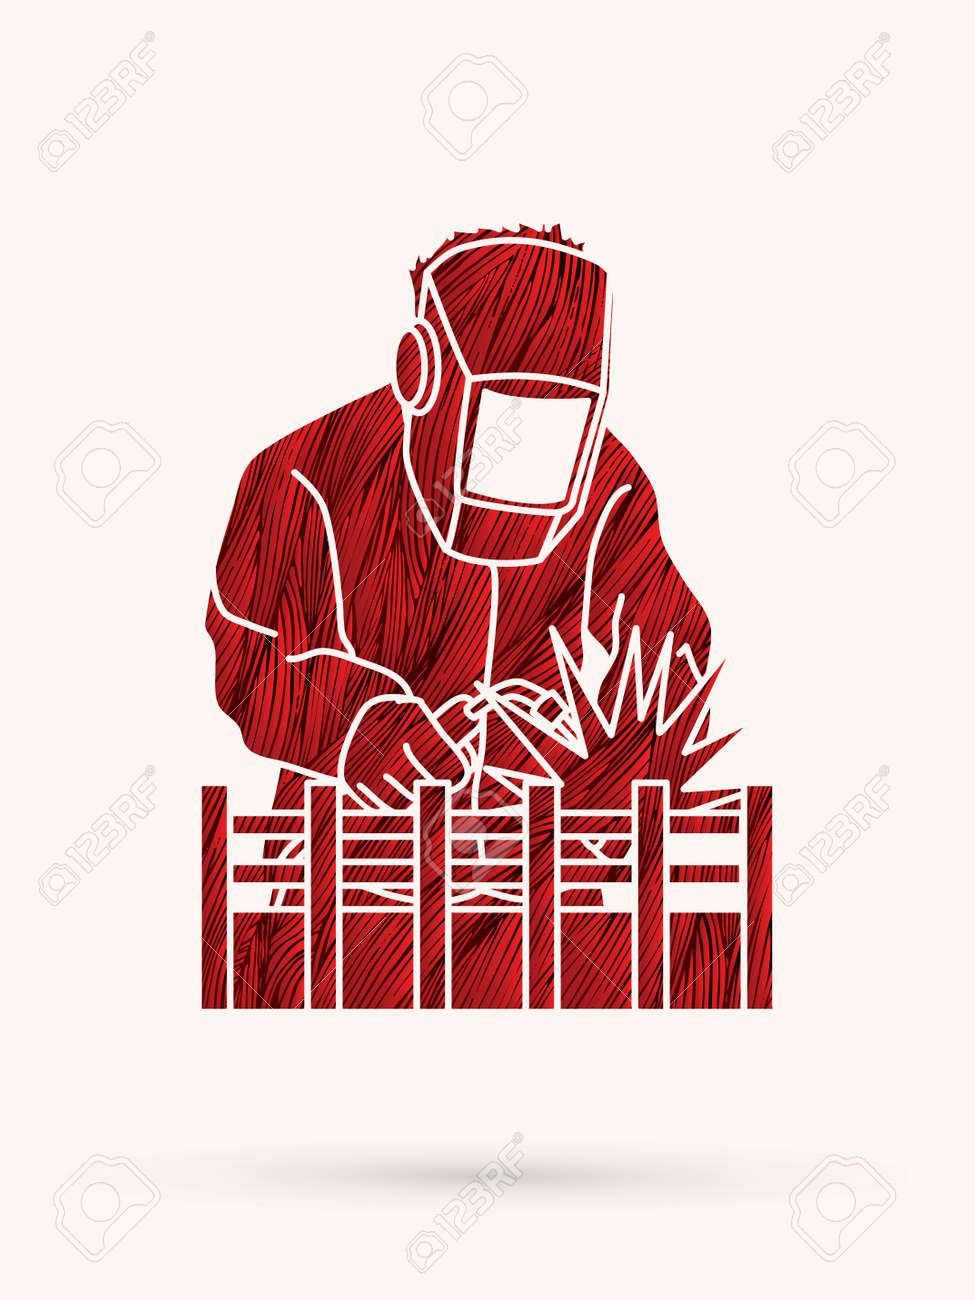 Welding with sparks designed using red grunge brush graphic vector. - 61348158